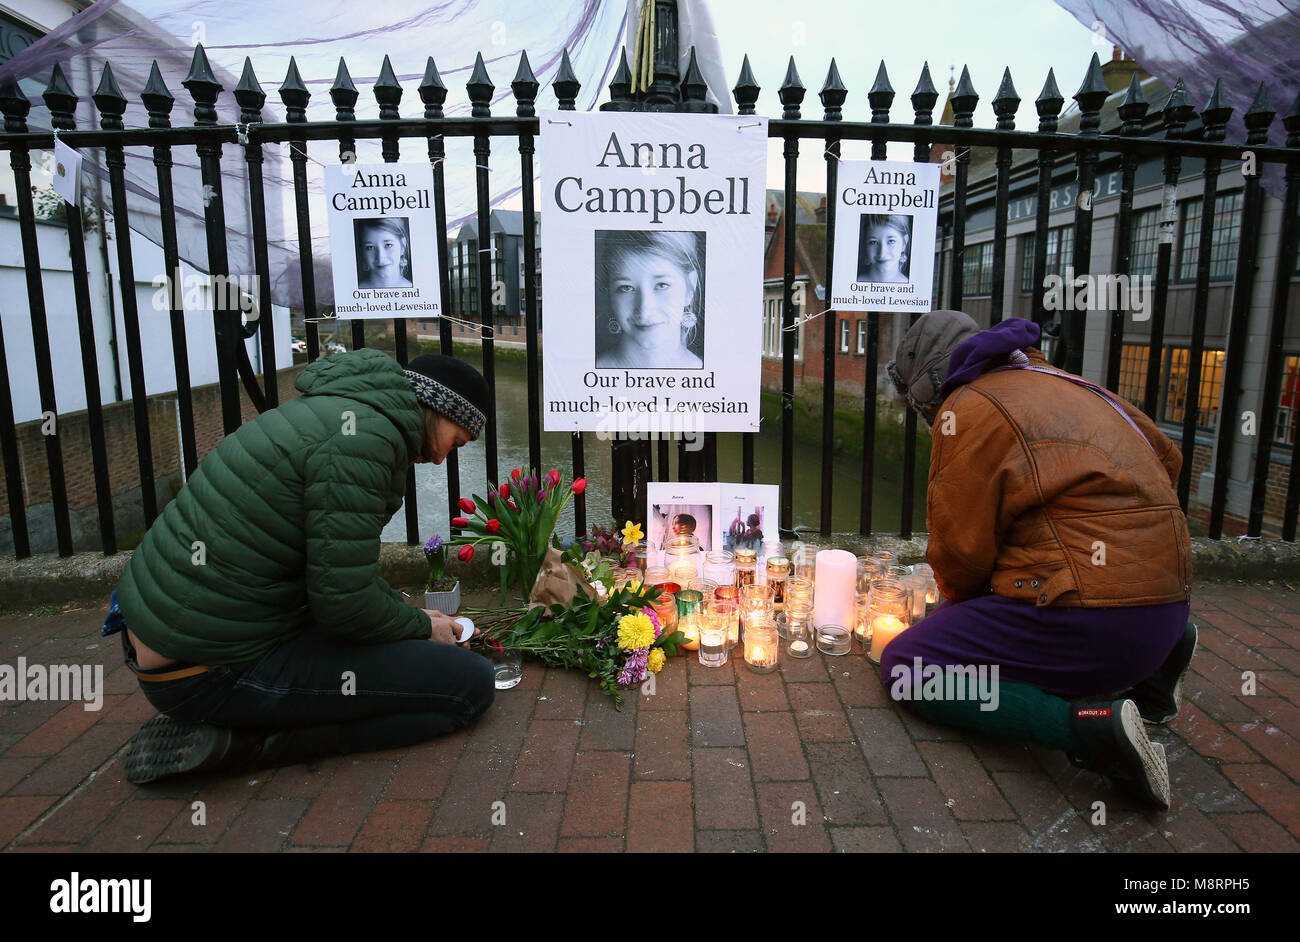 25e0cb9187 People attend a vigil honouring Anna Campbell in her home town of Lewes,  East Sussex, as the British woman who died fighting with a Kurdish armed  unit in ...